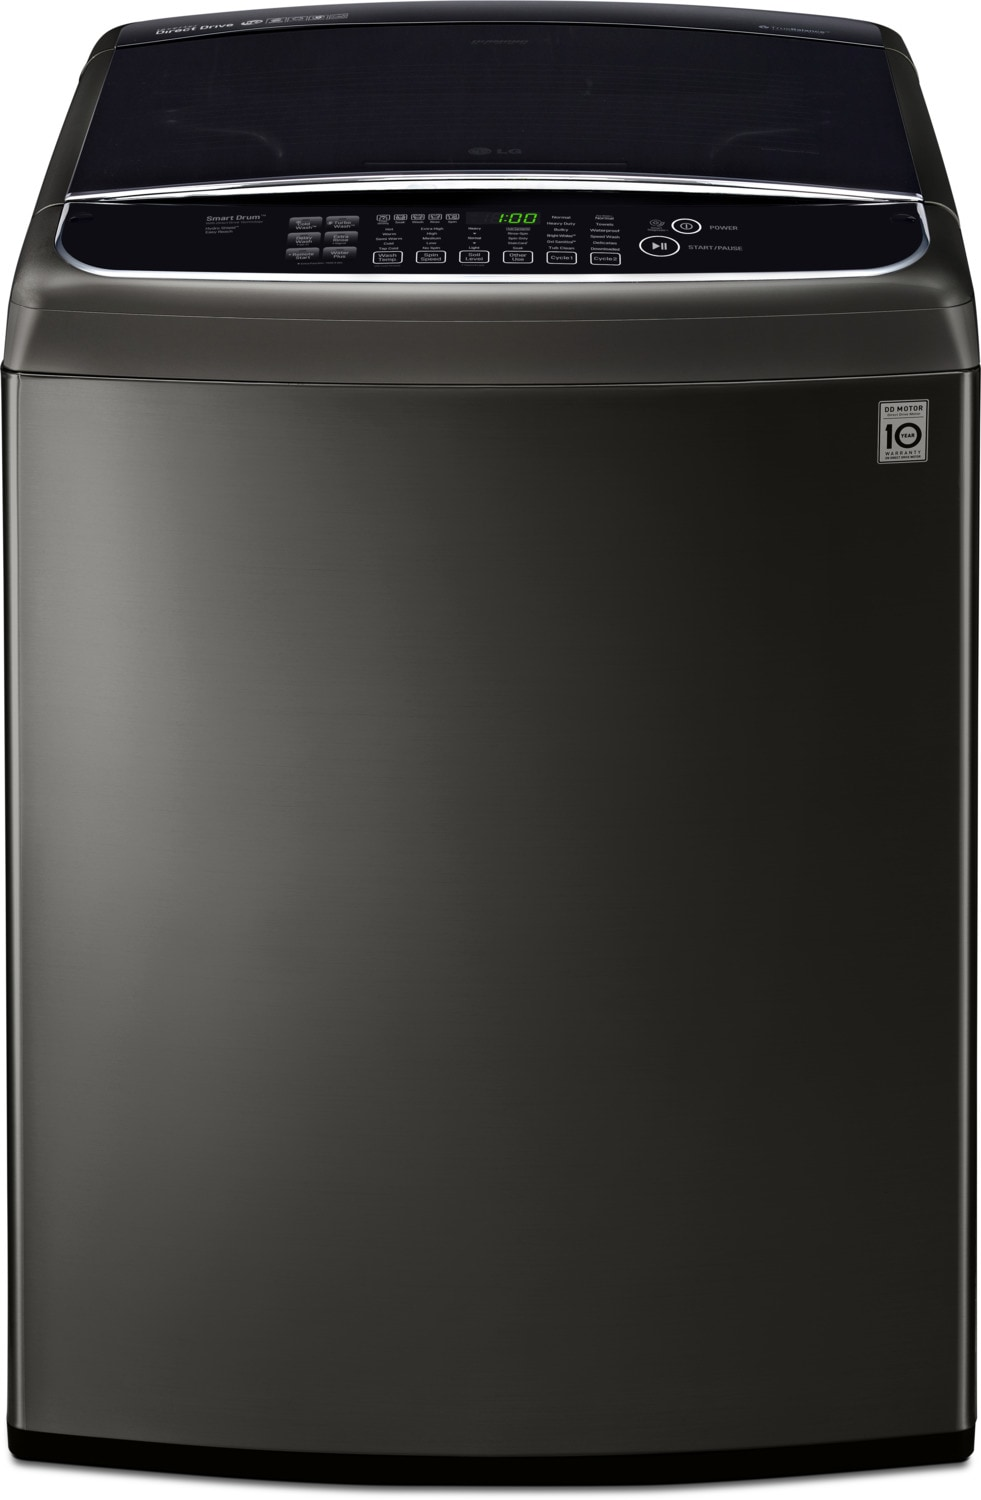 LG 5.8 Cu. Ft. Top-Load Washer with TurboWash™ – WT1901CK